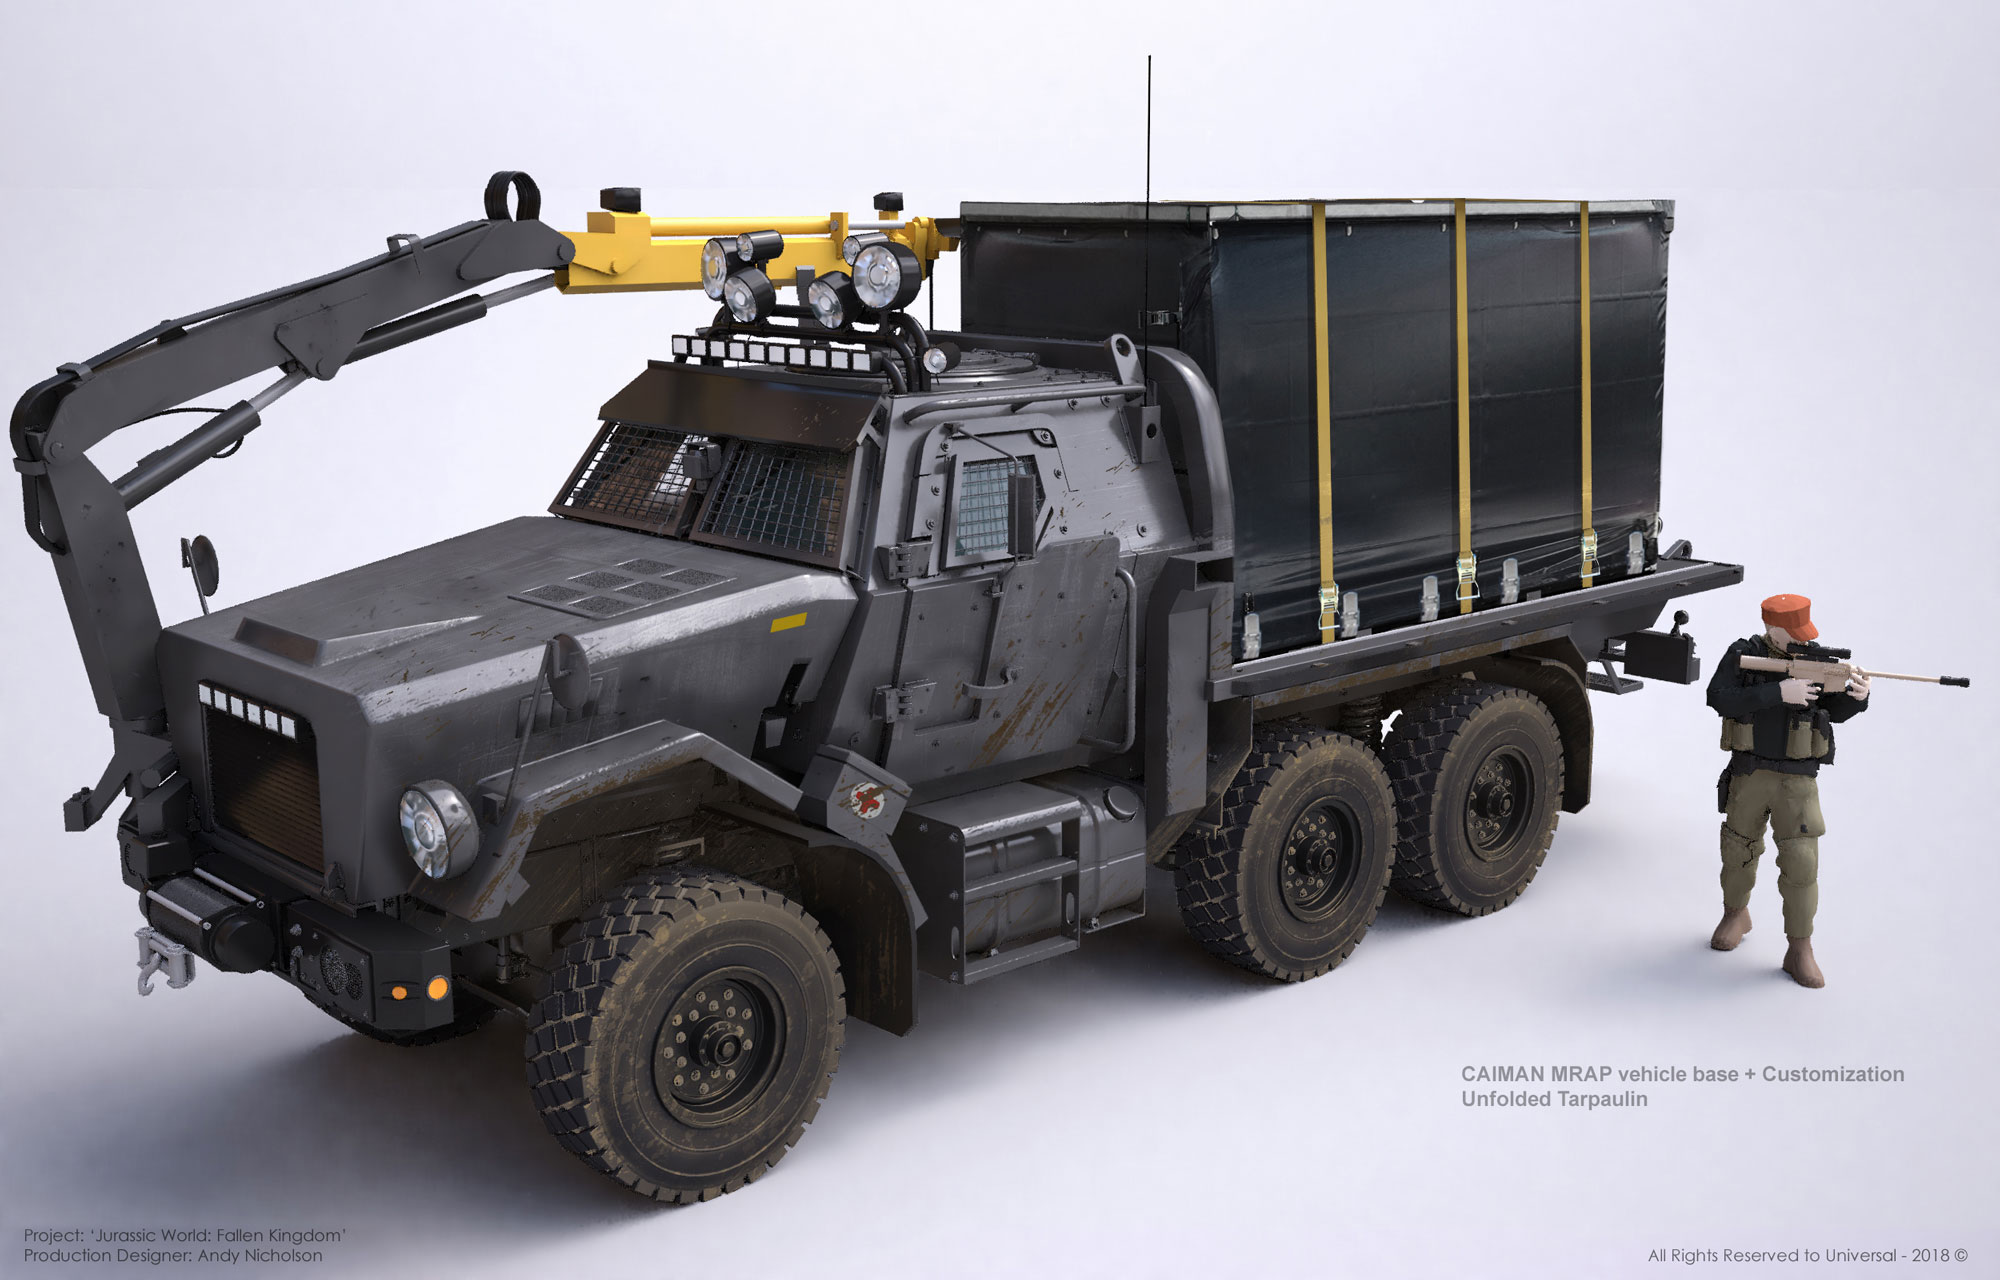 160926_ASSET_VEHICLE_MRAP_CRANE_AV_01_1002